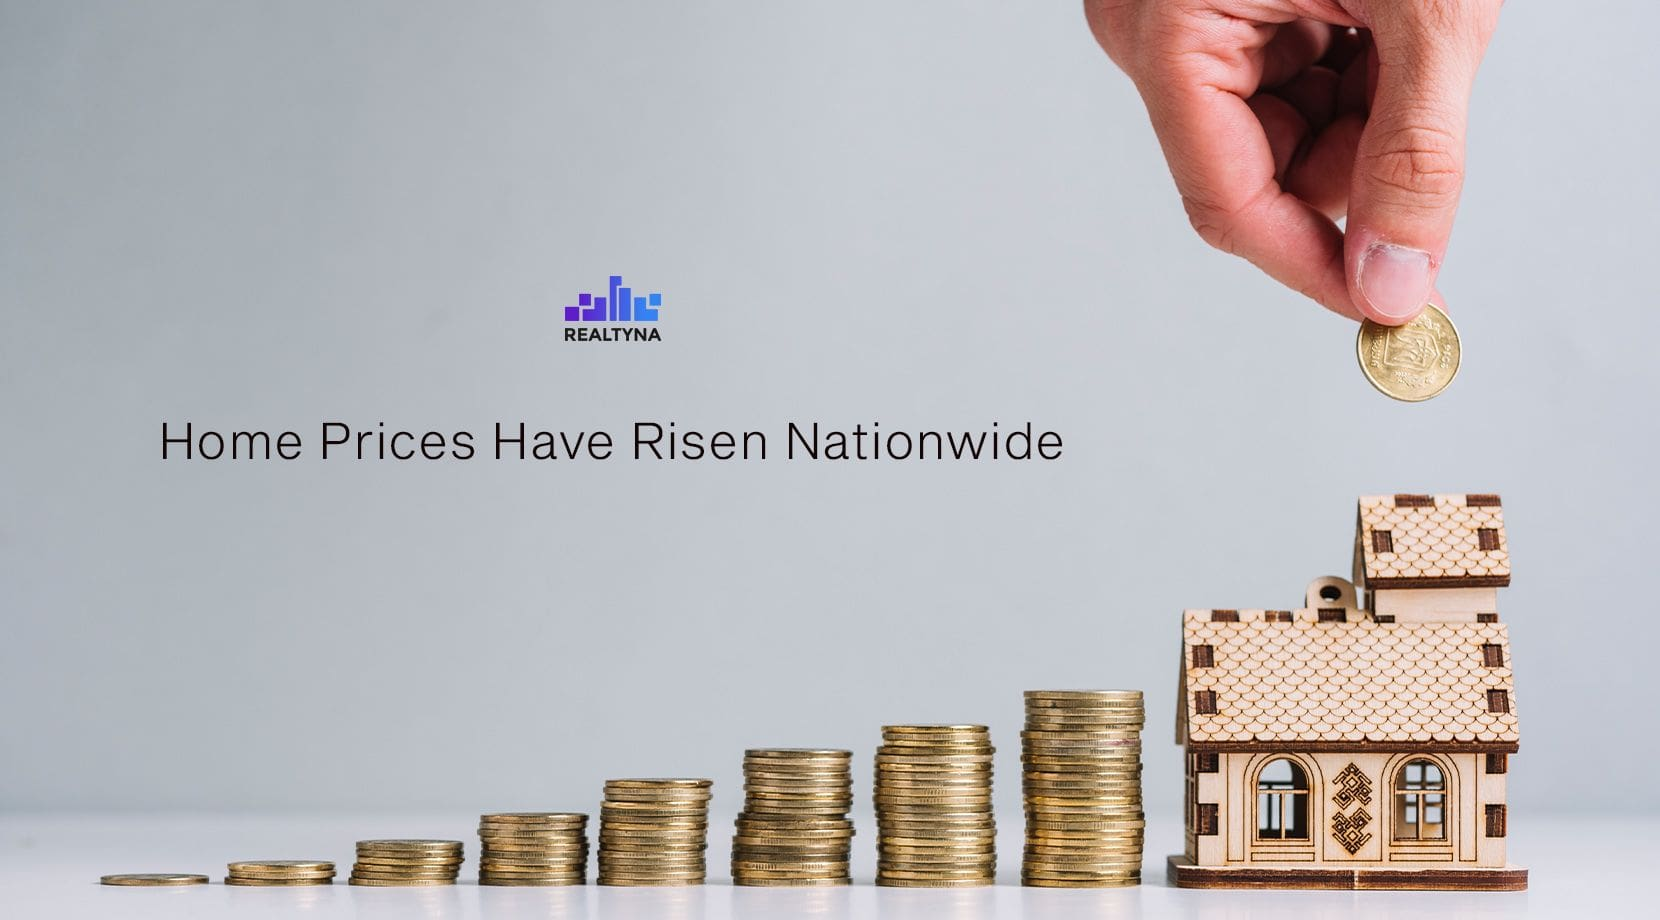 Home Prices Have Risen Nationwide